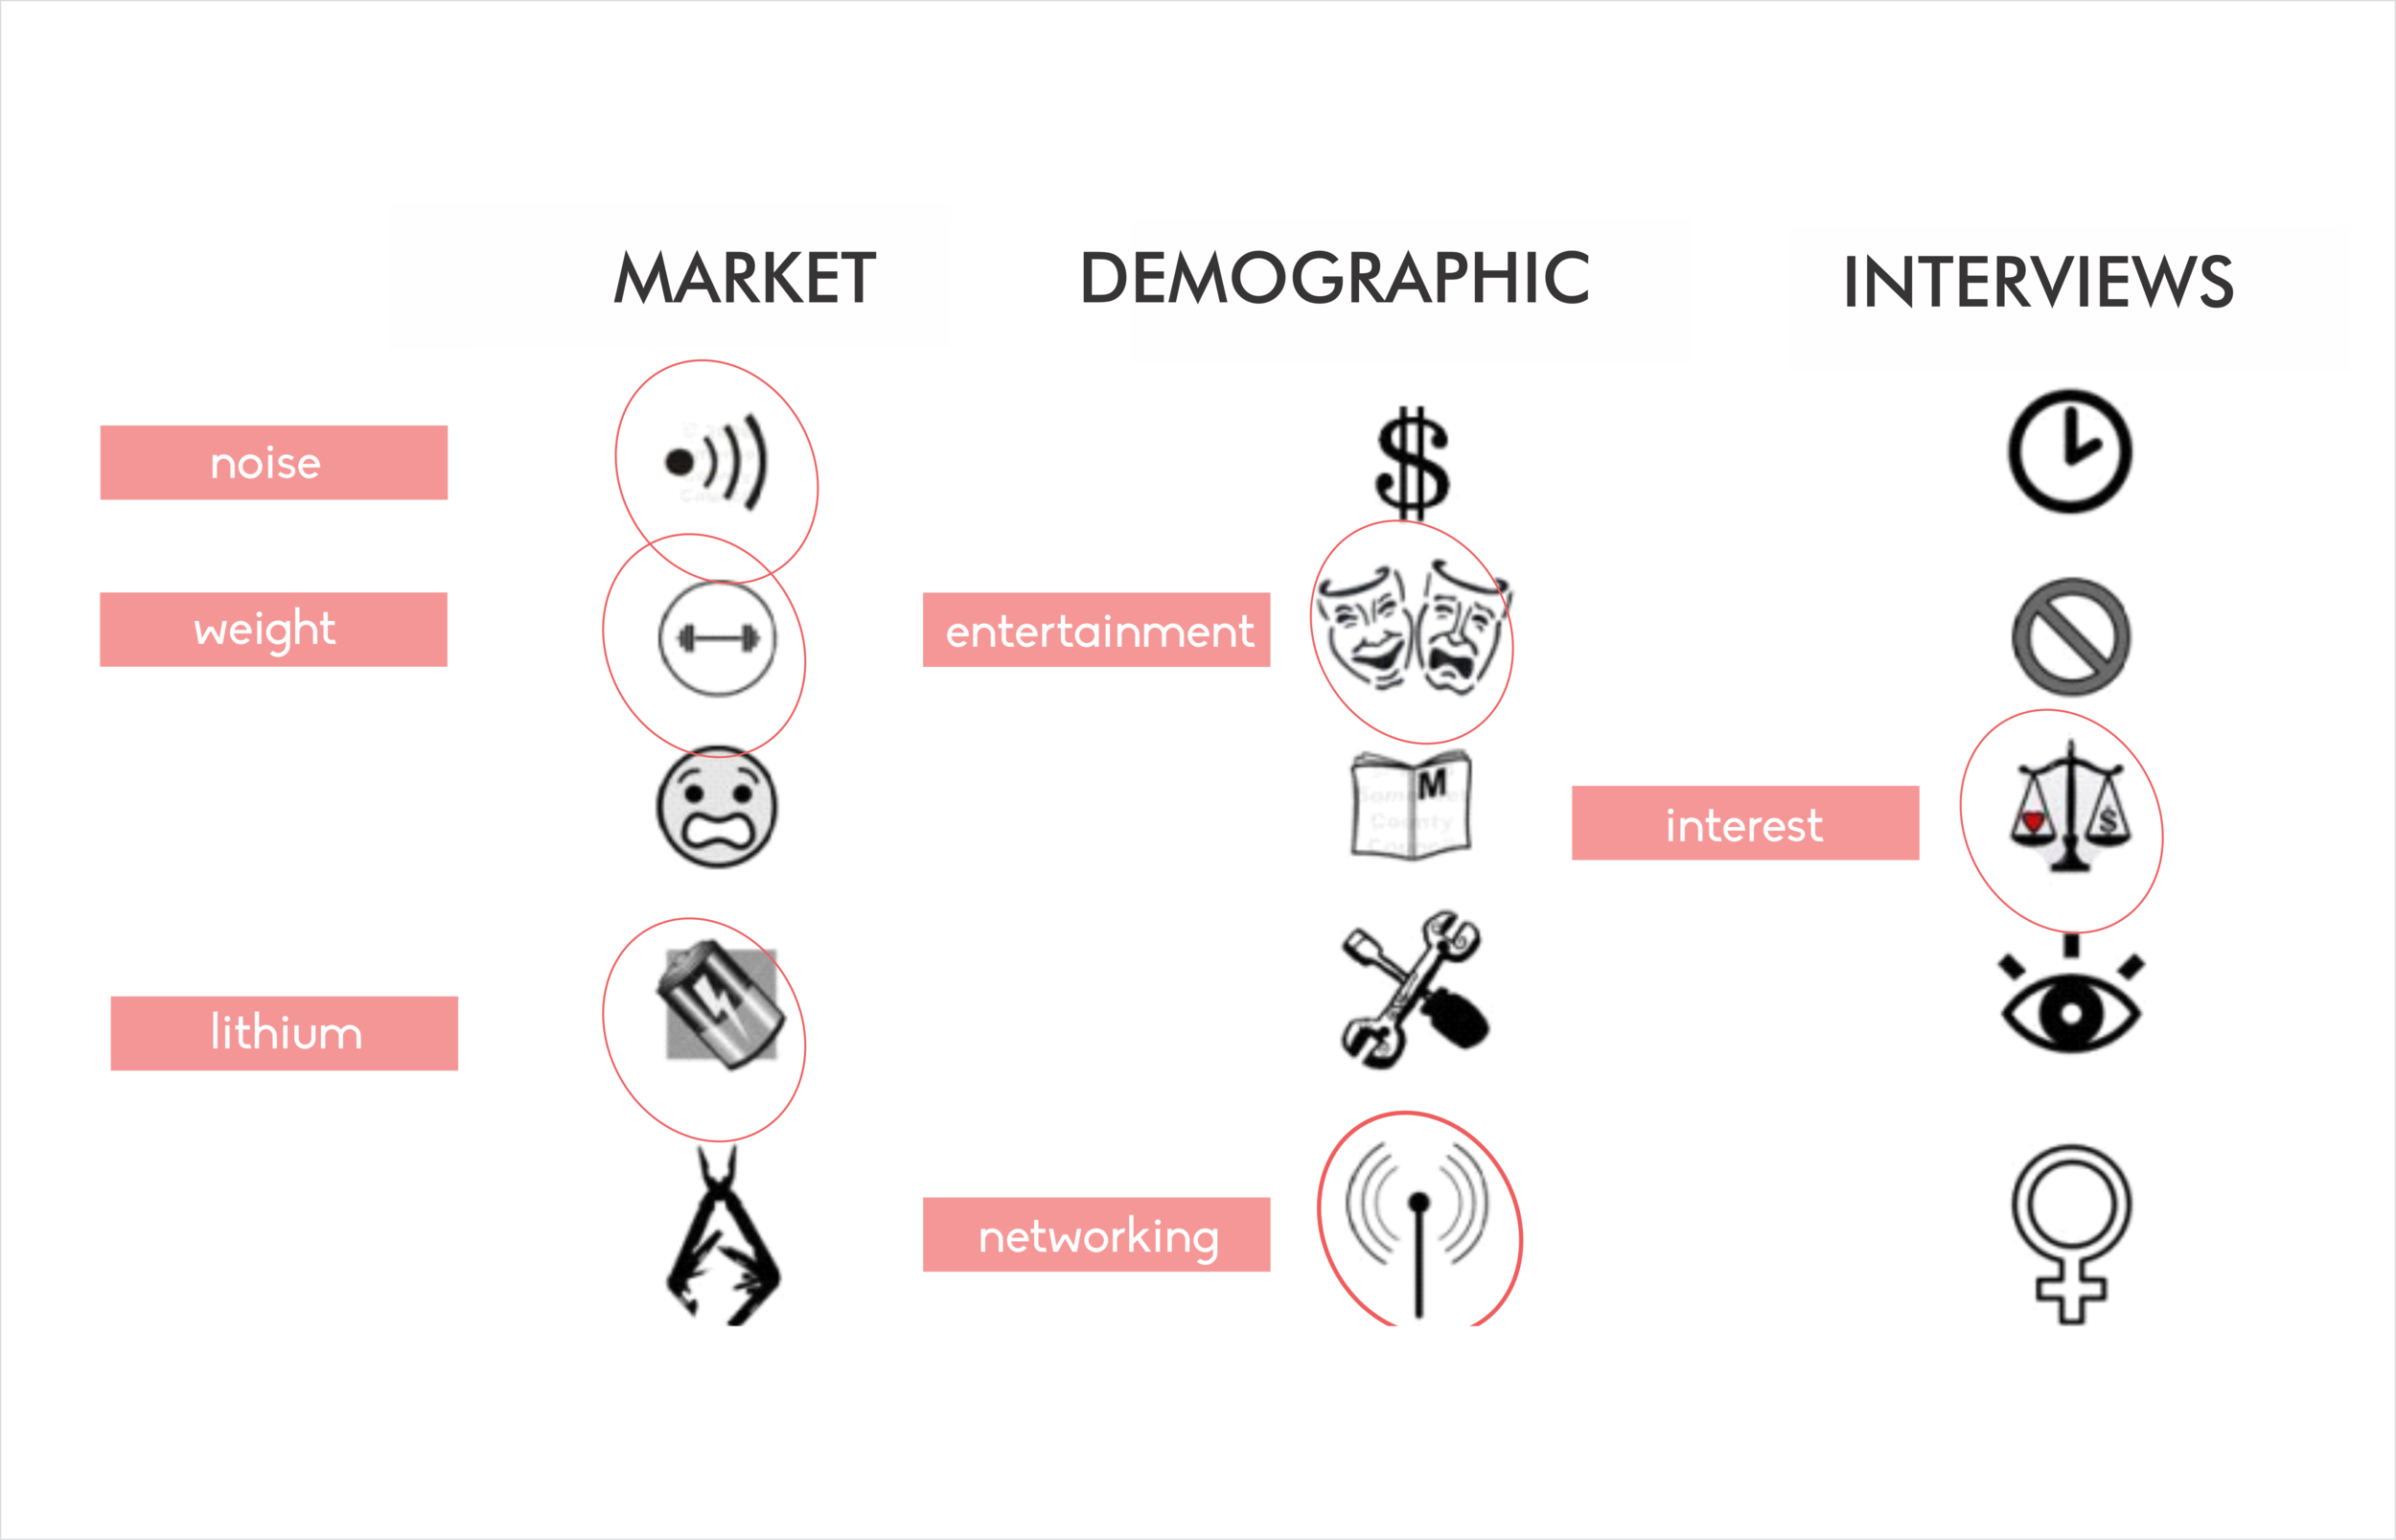 Accumulated findings from market, demographic and user interviews showed that they firstly had the exposure, would only pick it up if it interested and entertained them, allowed for networking needs, and the tools were lighter, less noisy and easy to use.